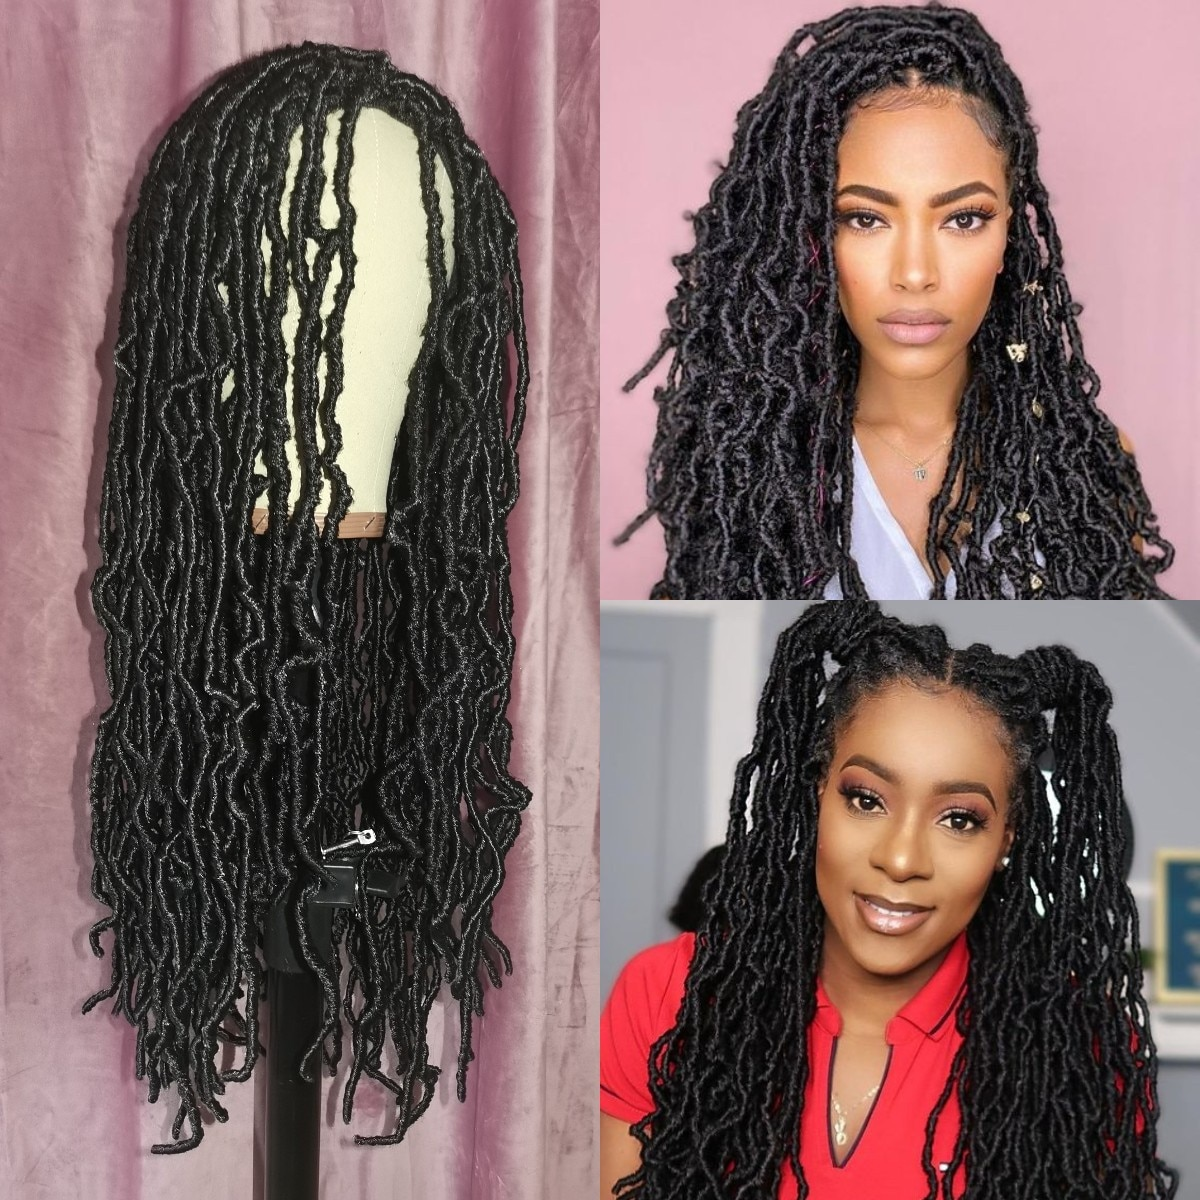 Braided Wigs Faux Locs Nu Soft Godness Locs Wig Natural Style Heavy Handmade Micro Braids Synthetic Hair Long Braiding Hair Wigs